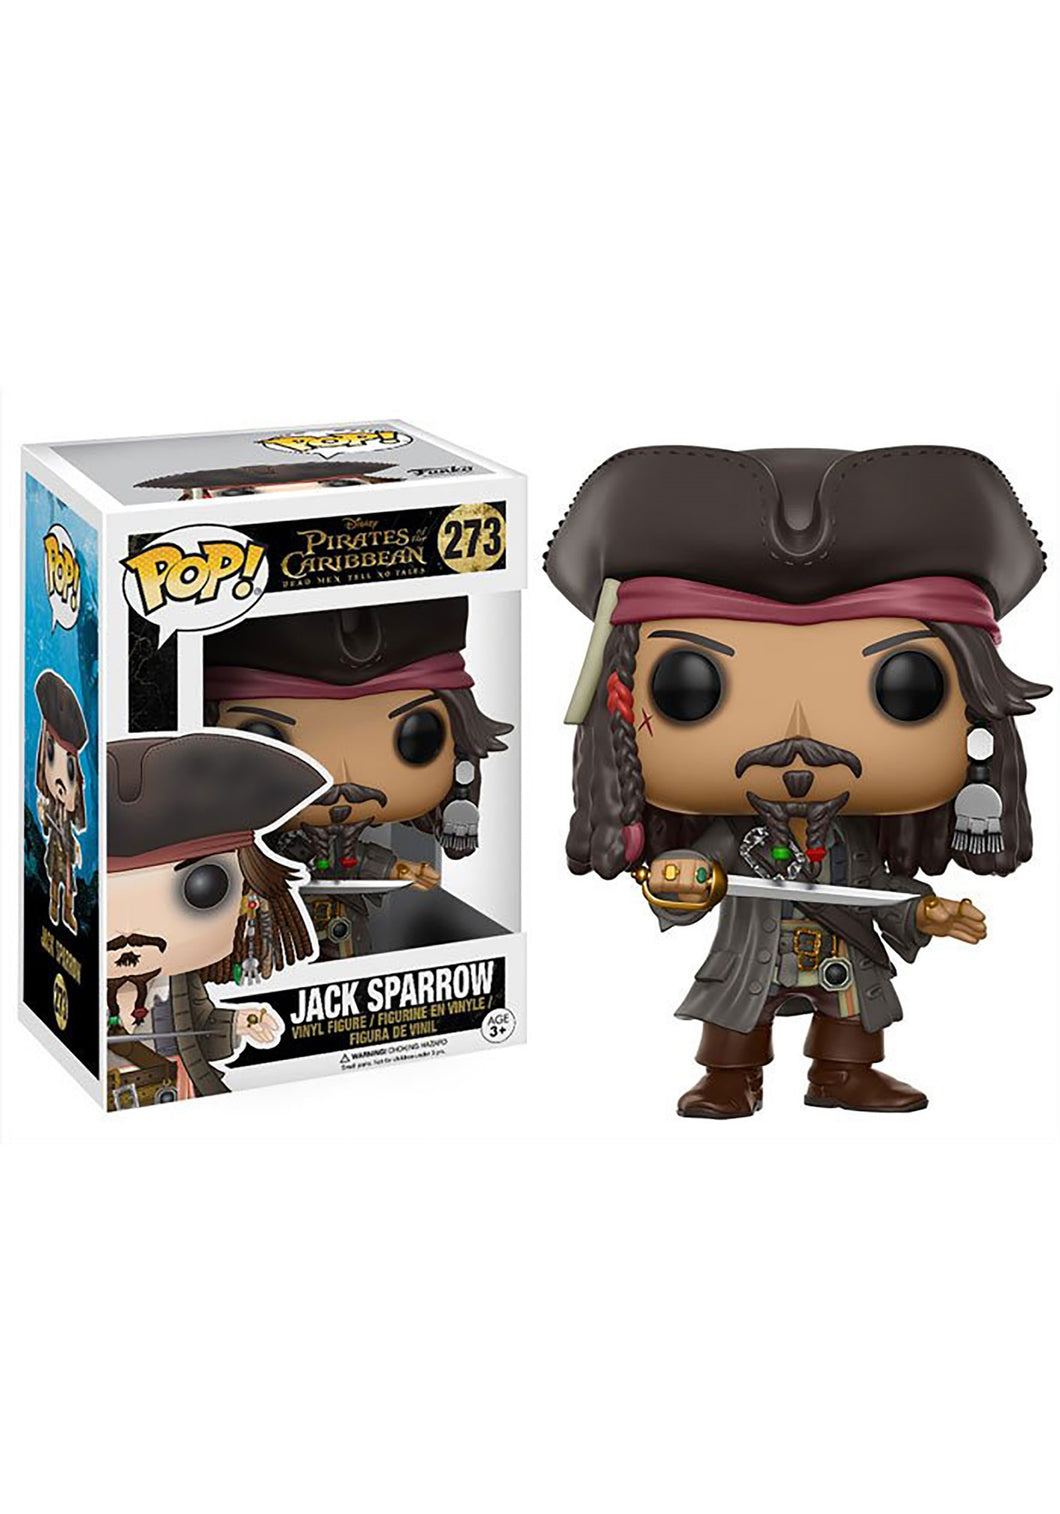 DISNEY PIRATES OF THE CARIBBEAN JACK SPARROW POP! VINYL FIGURE #273